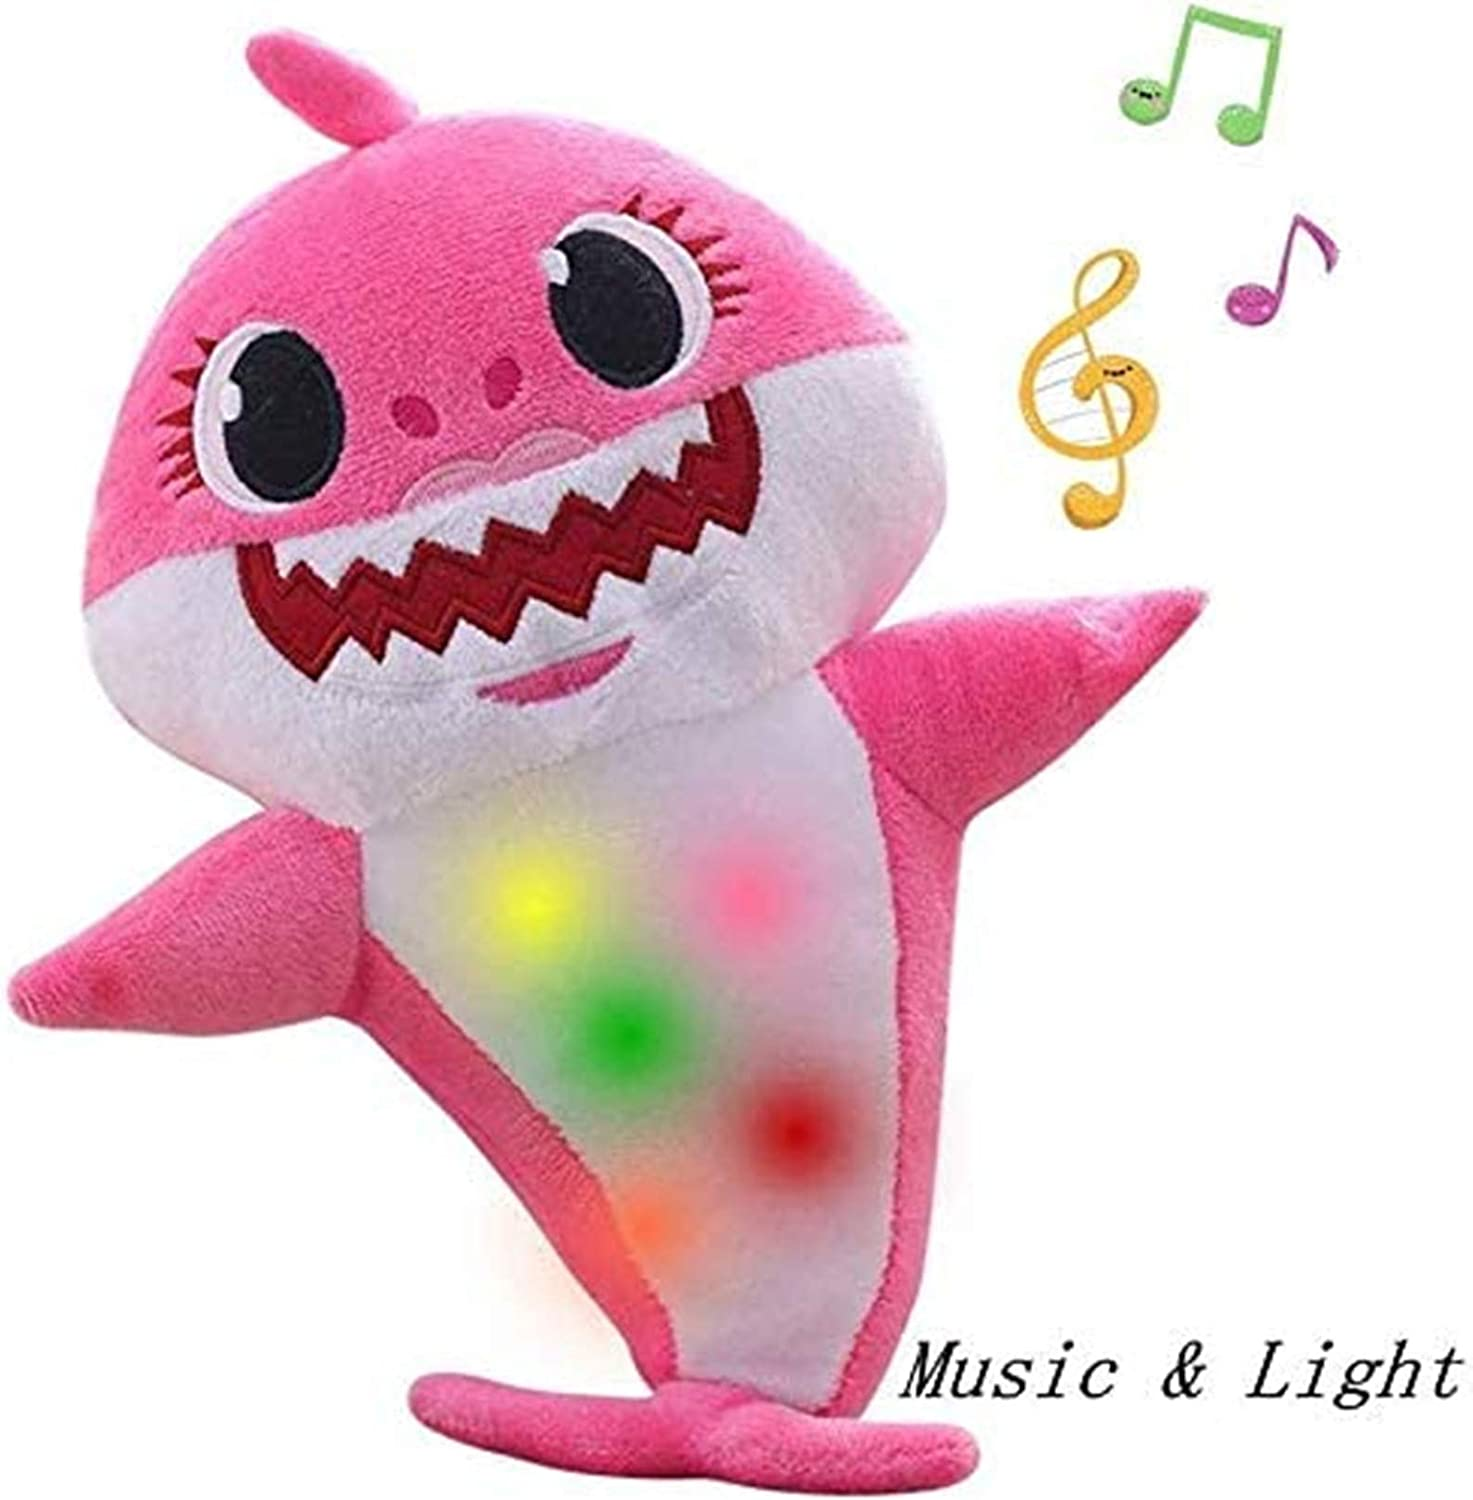 Jiahao Children's Soft Toy Shark Baby,Singing and Lightening Baby Shark Plush Doll,is The Best Gift for Boys and Girls(Pink)